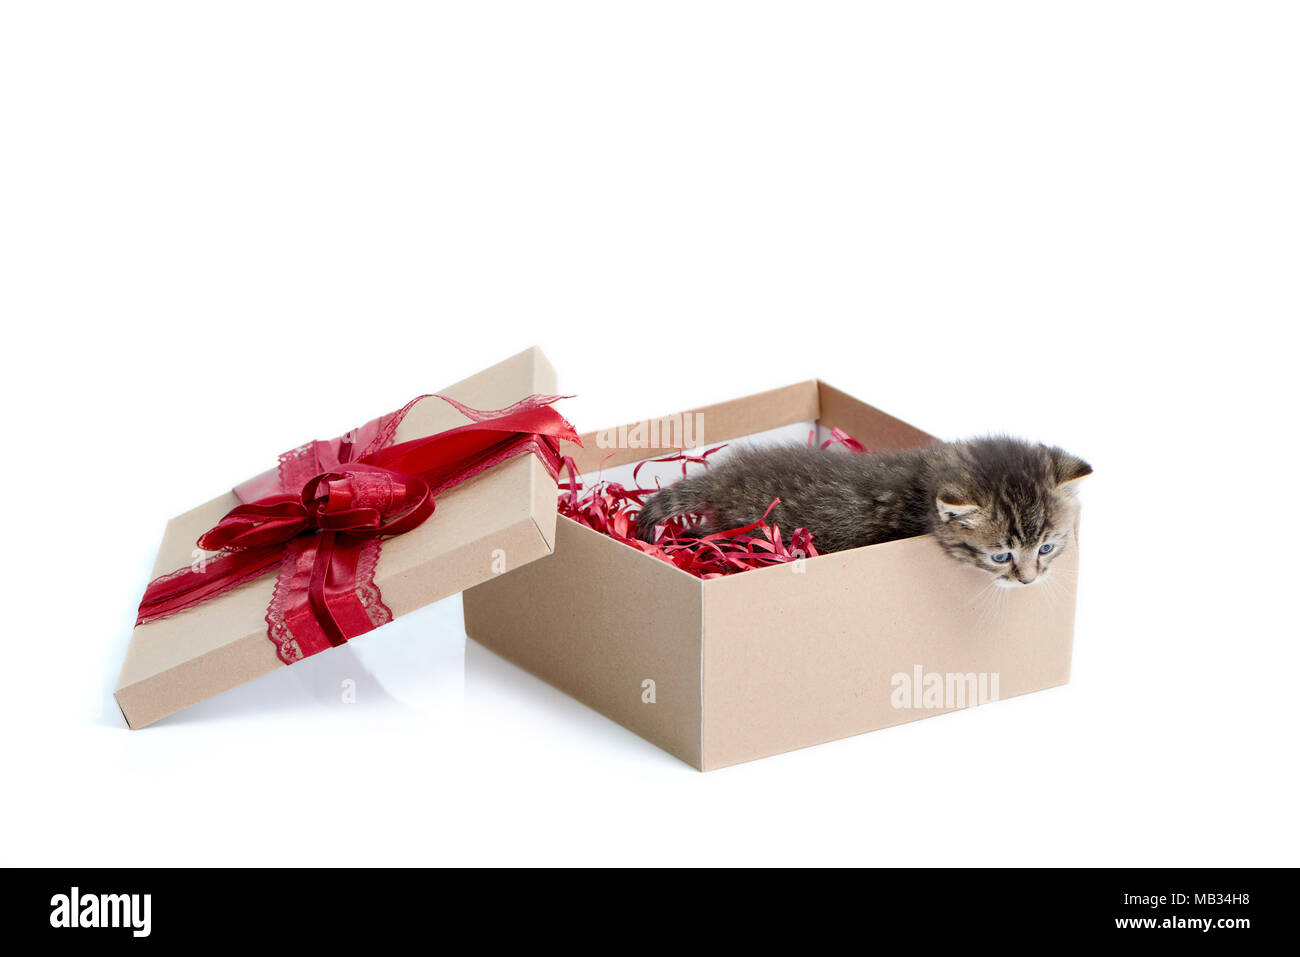 Cute present. Little brown striped funny kitten looking out of birthday box with big red bow on top. Cuteness happiness small fluffy adorable charming playful kitty valentine decoration white Stock Photo